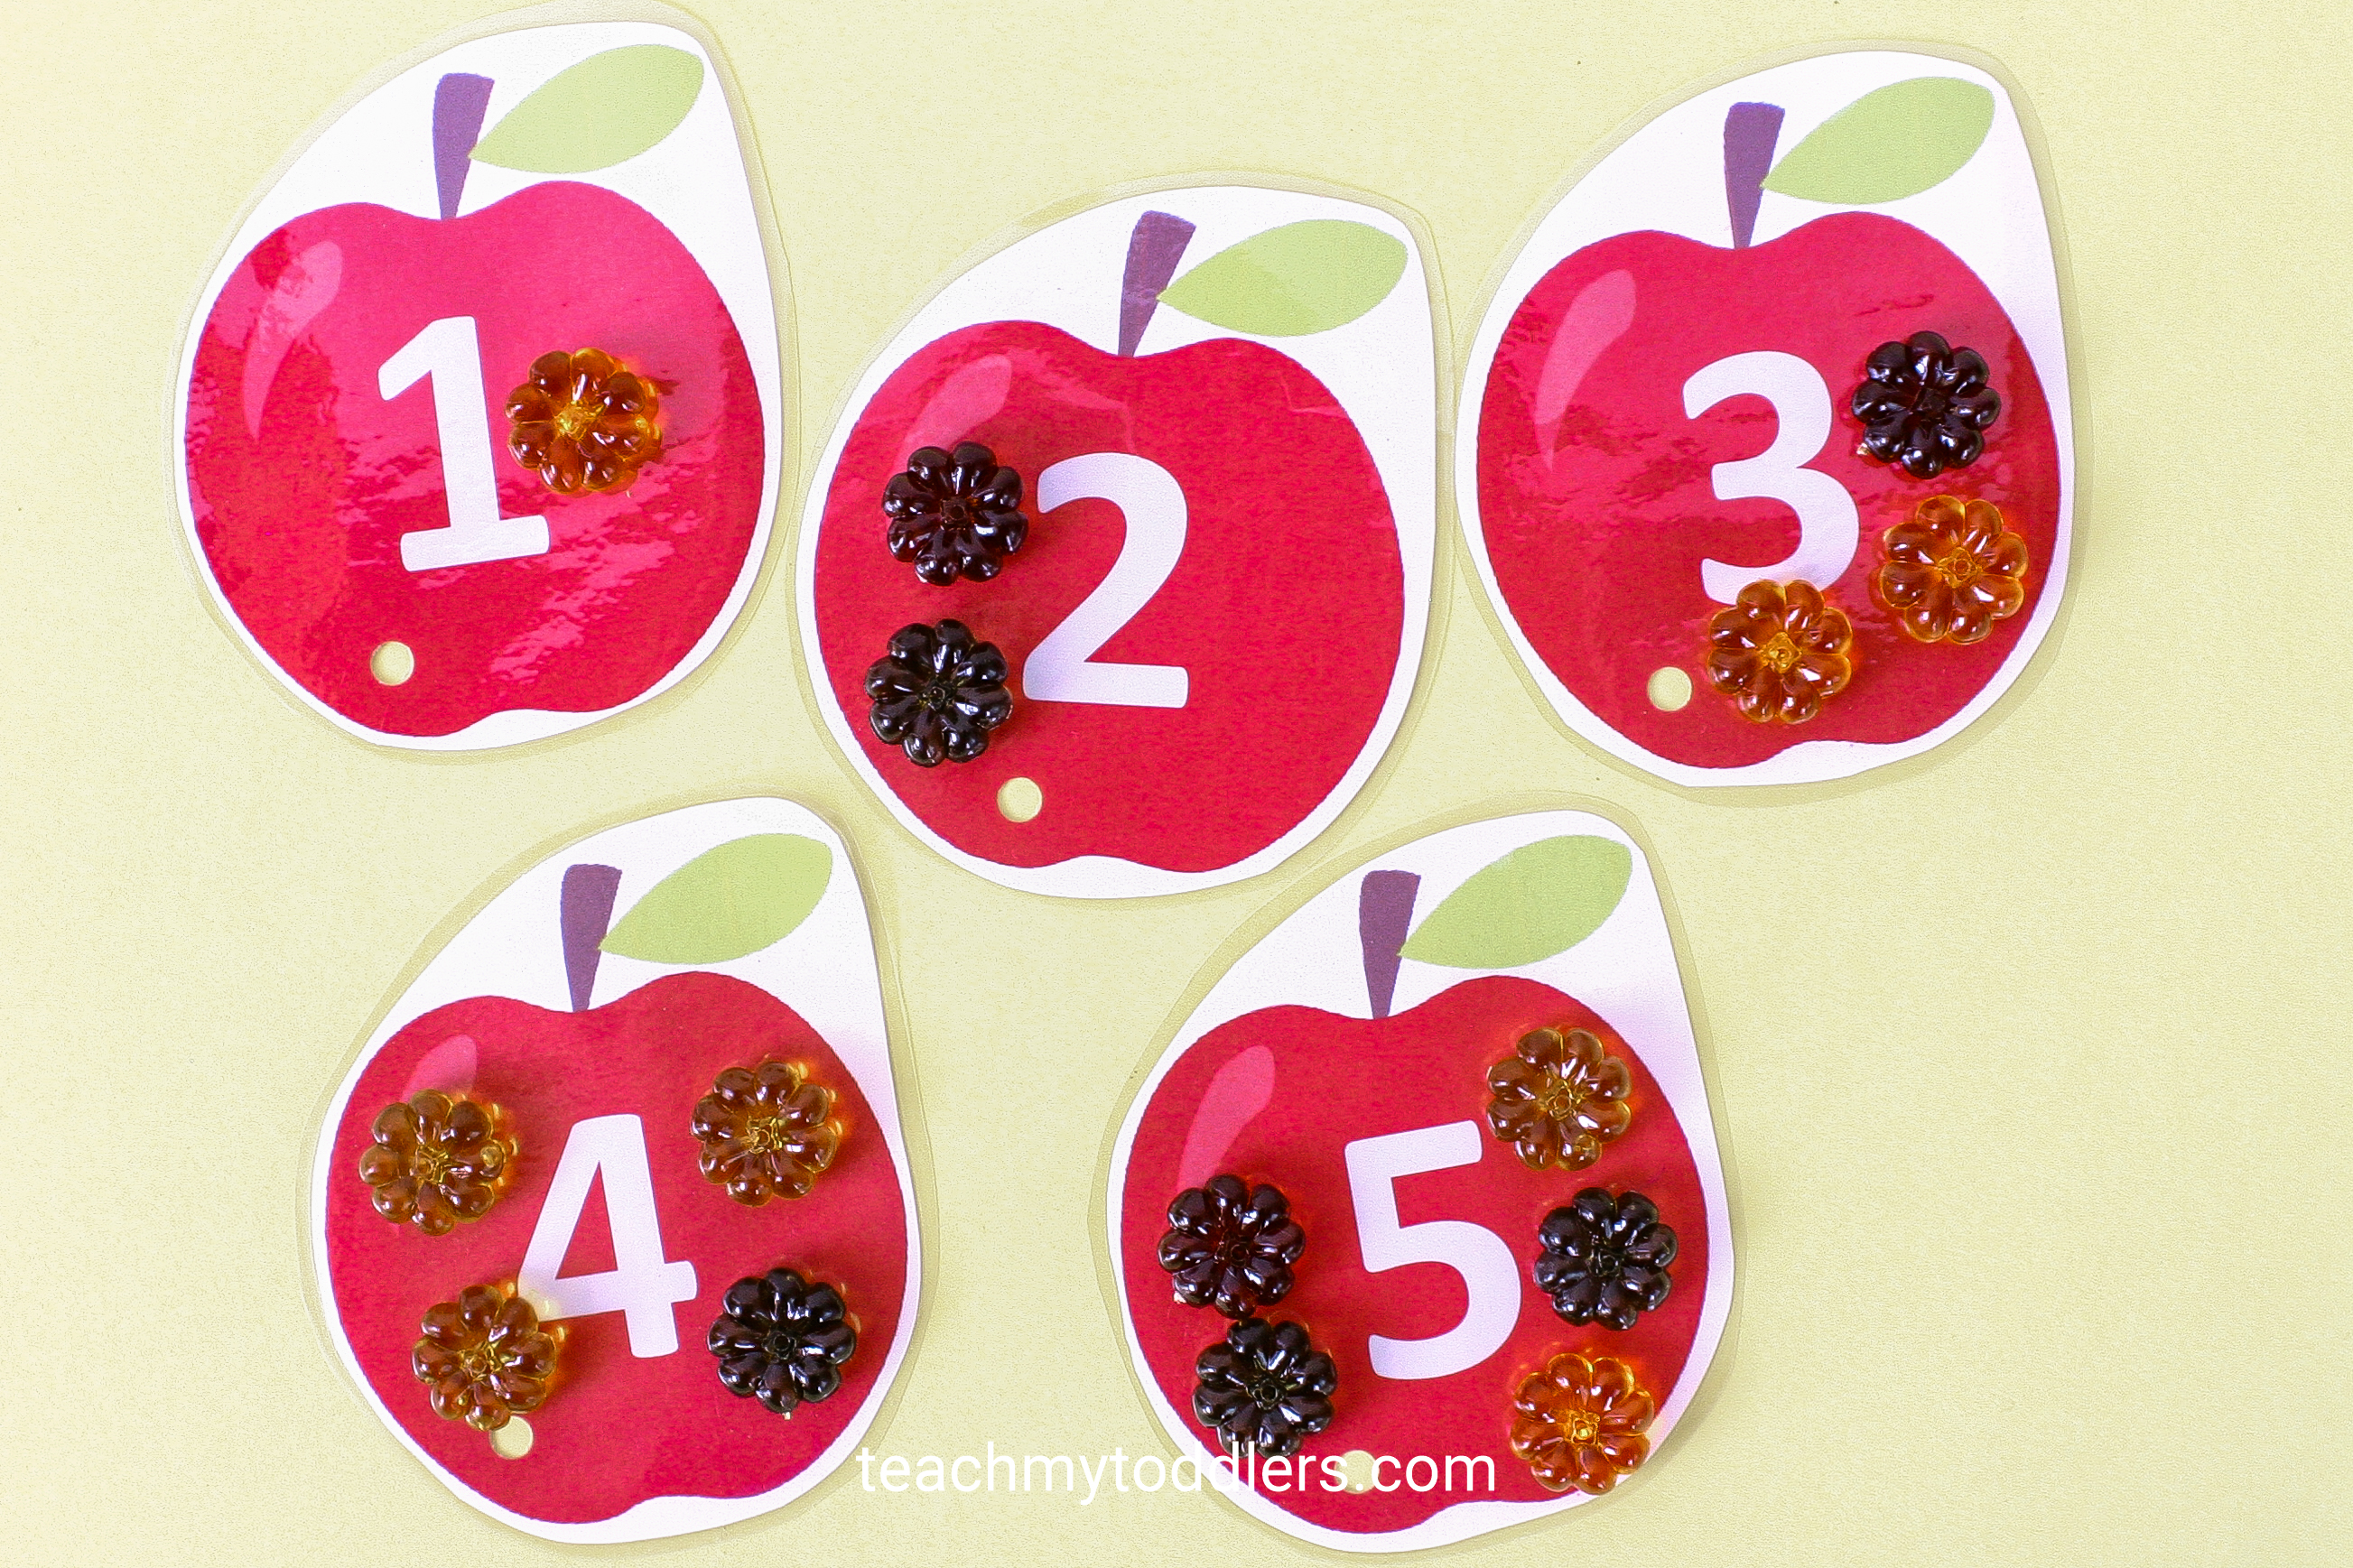 Use these unique table scatter activities to teach toddlers math